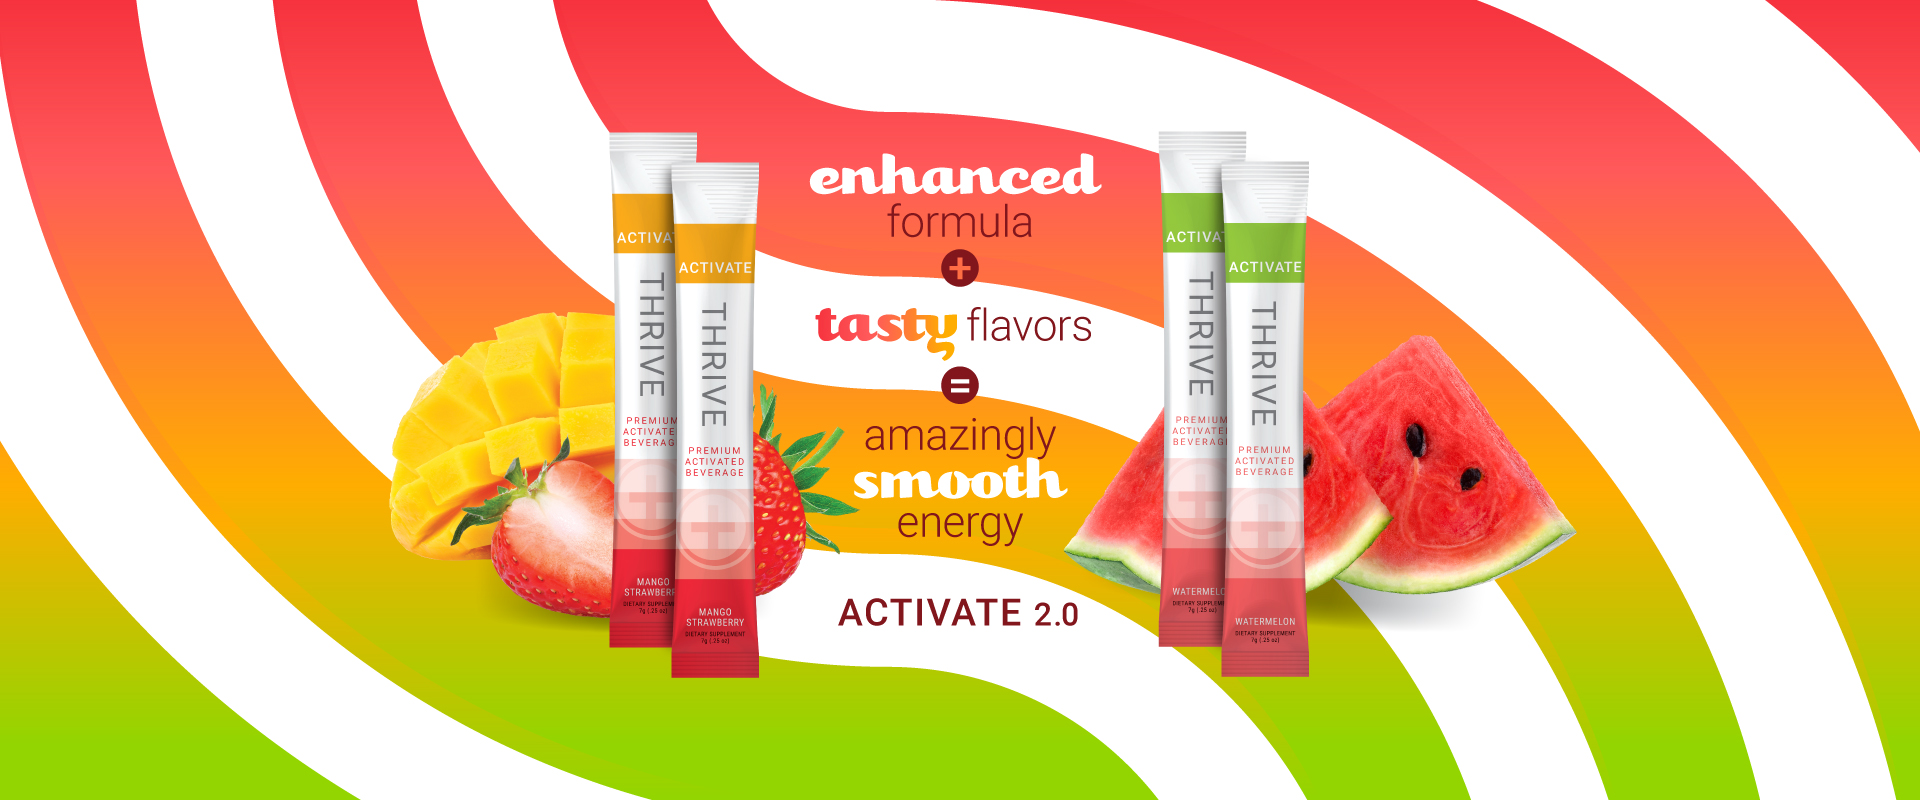 Activate 2.0 Mango Strawberry